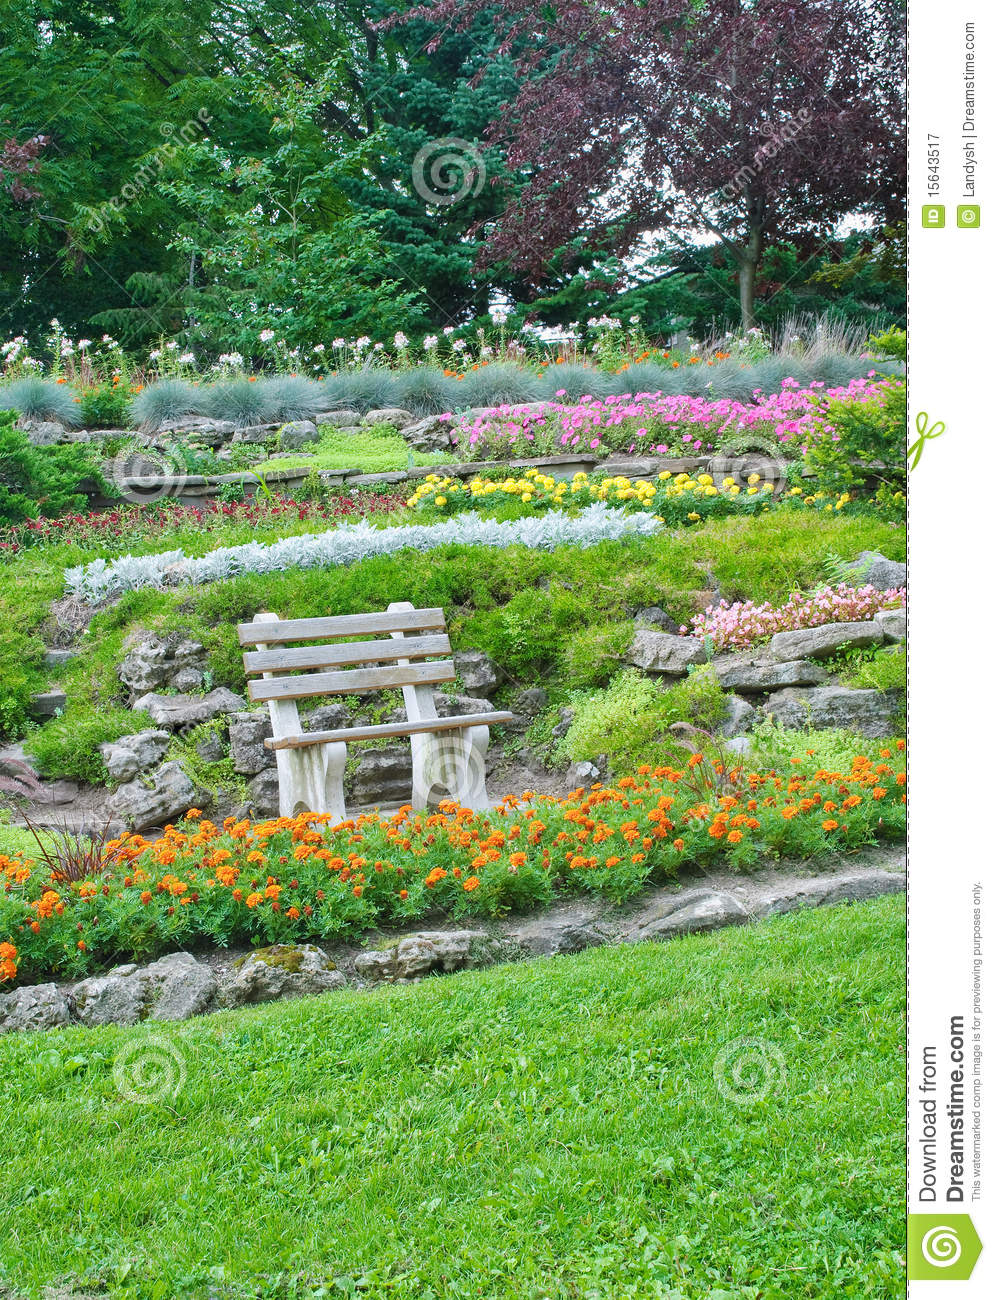 Summer park, bench in a designed garden, blooming flowers, decorative ...